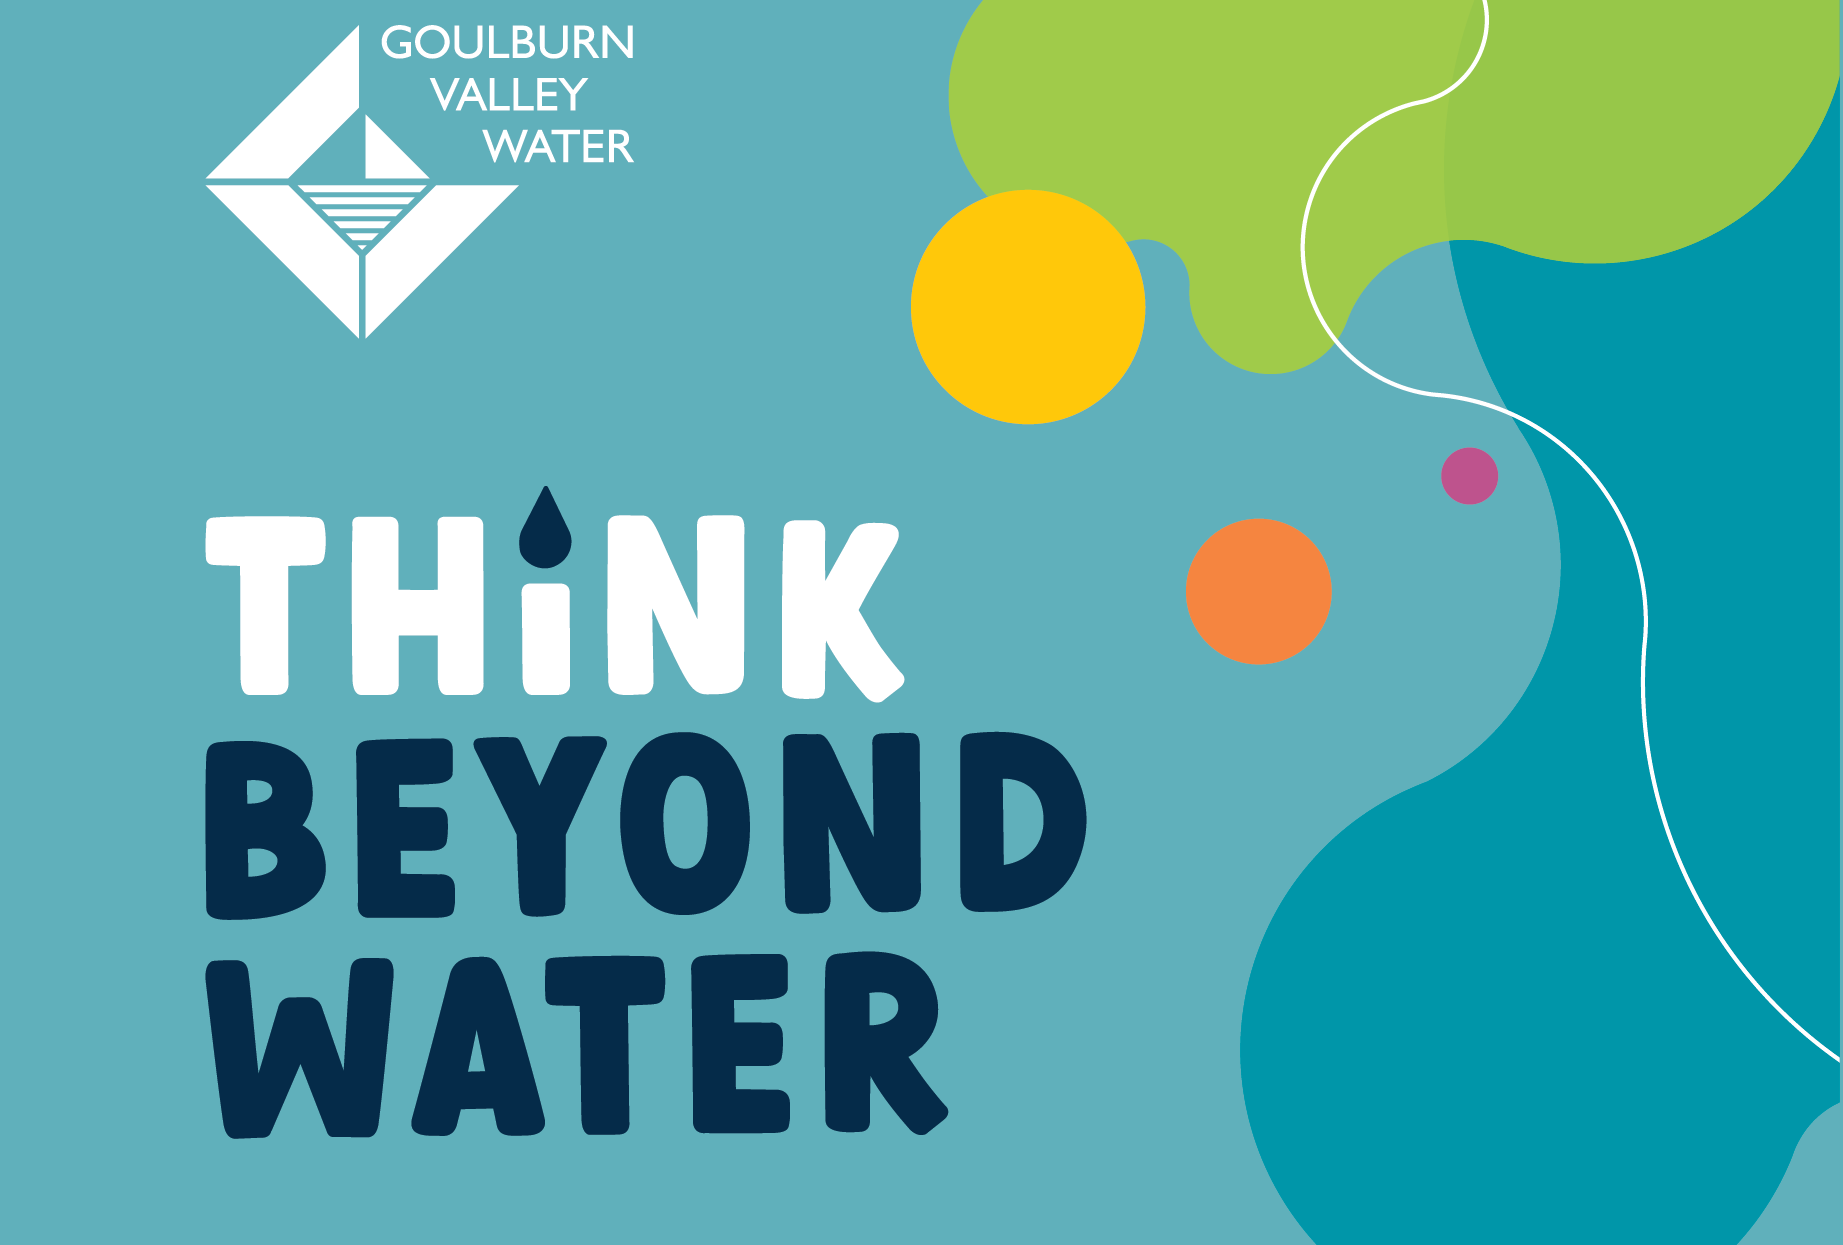 Think beyond water!